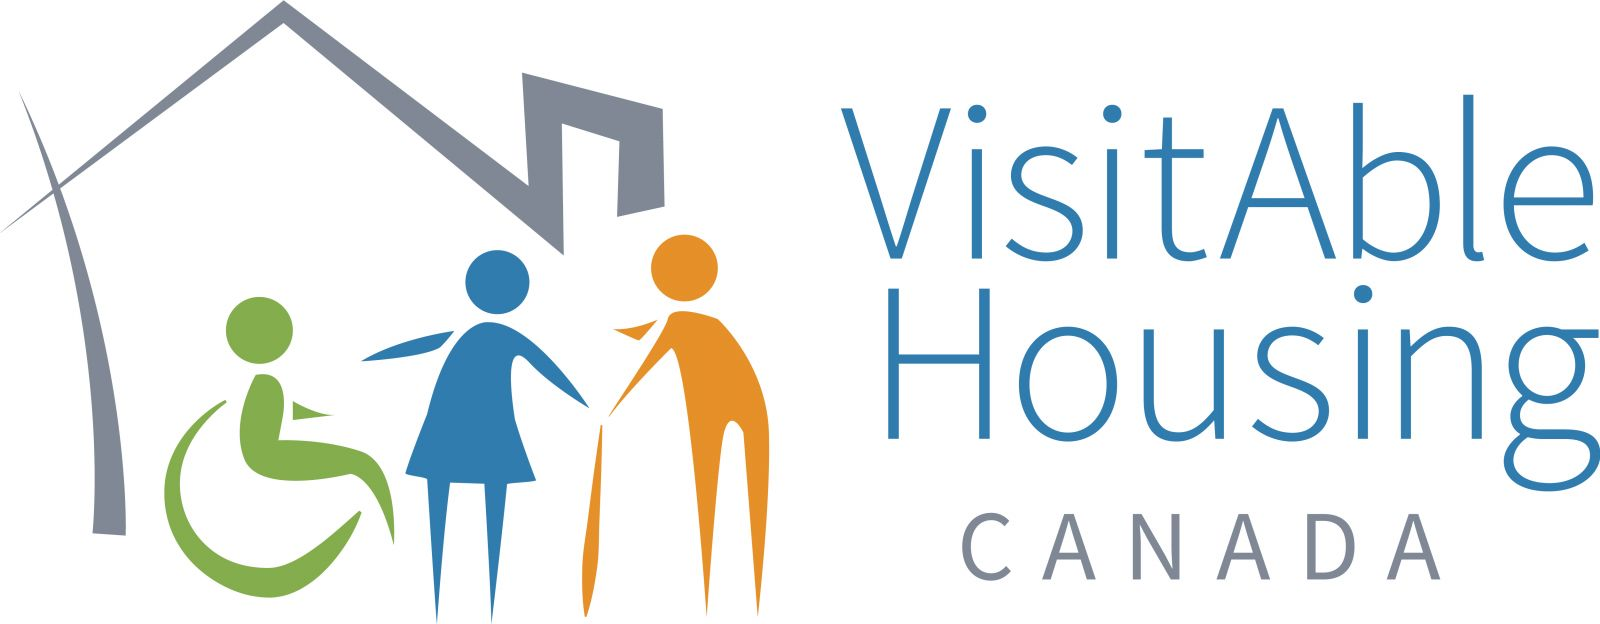 Visitable Housing Canada logo